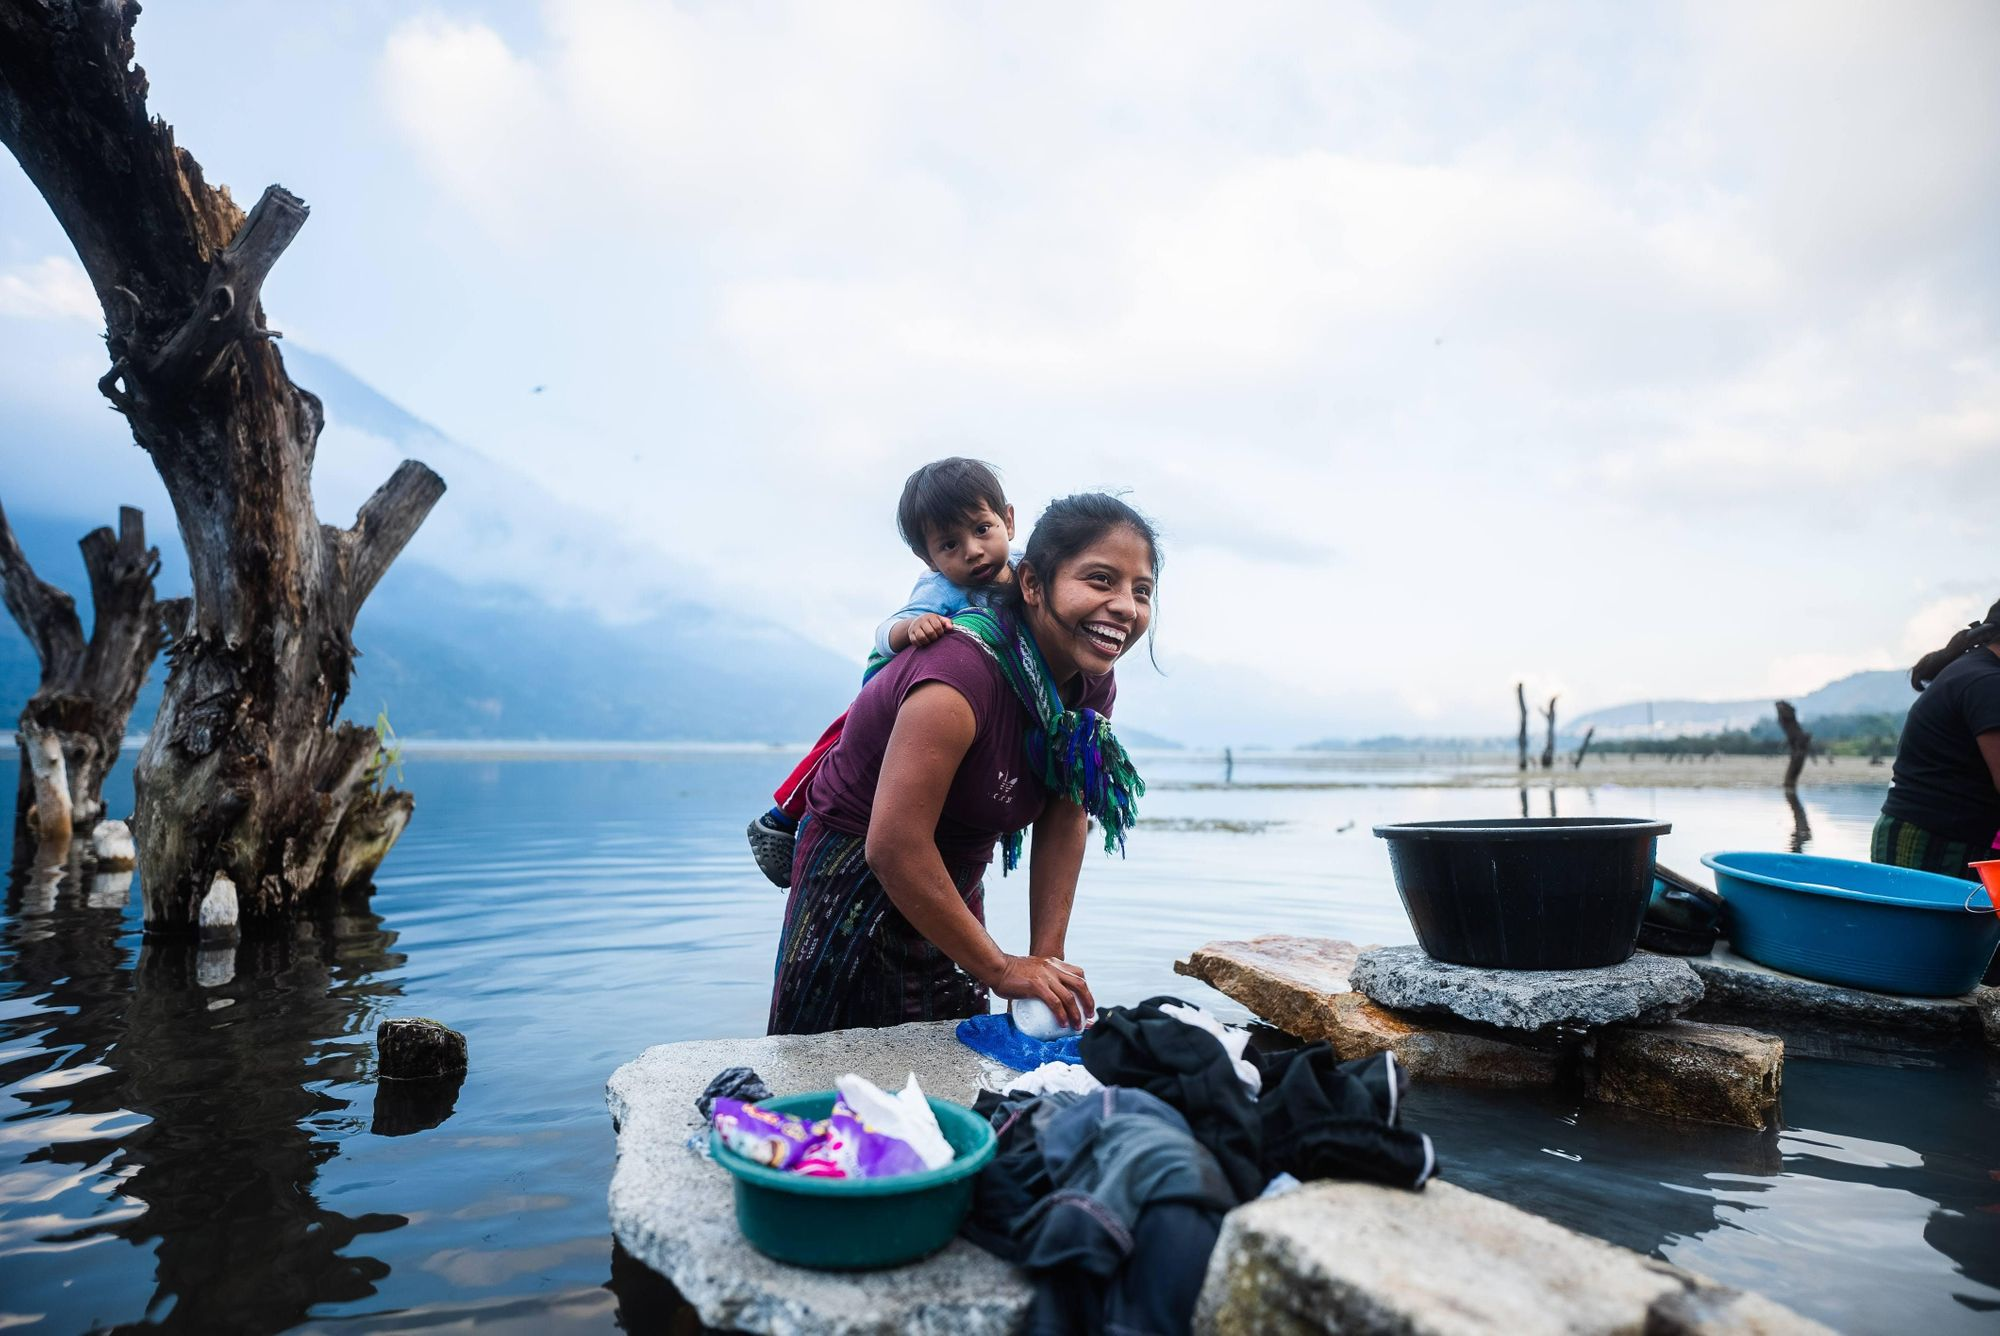 woman-with-child-working-at-shore